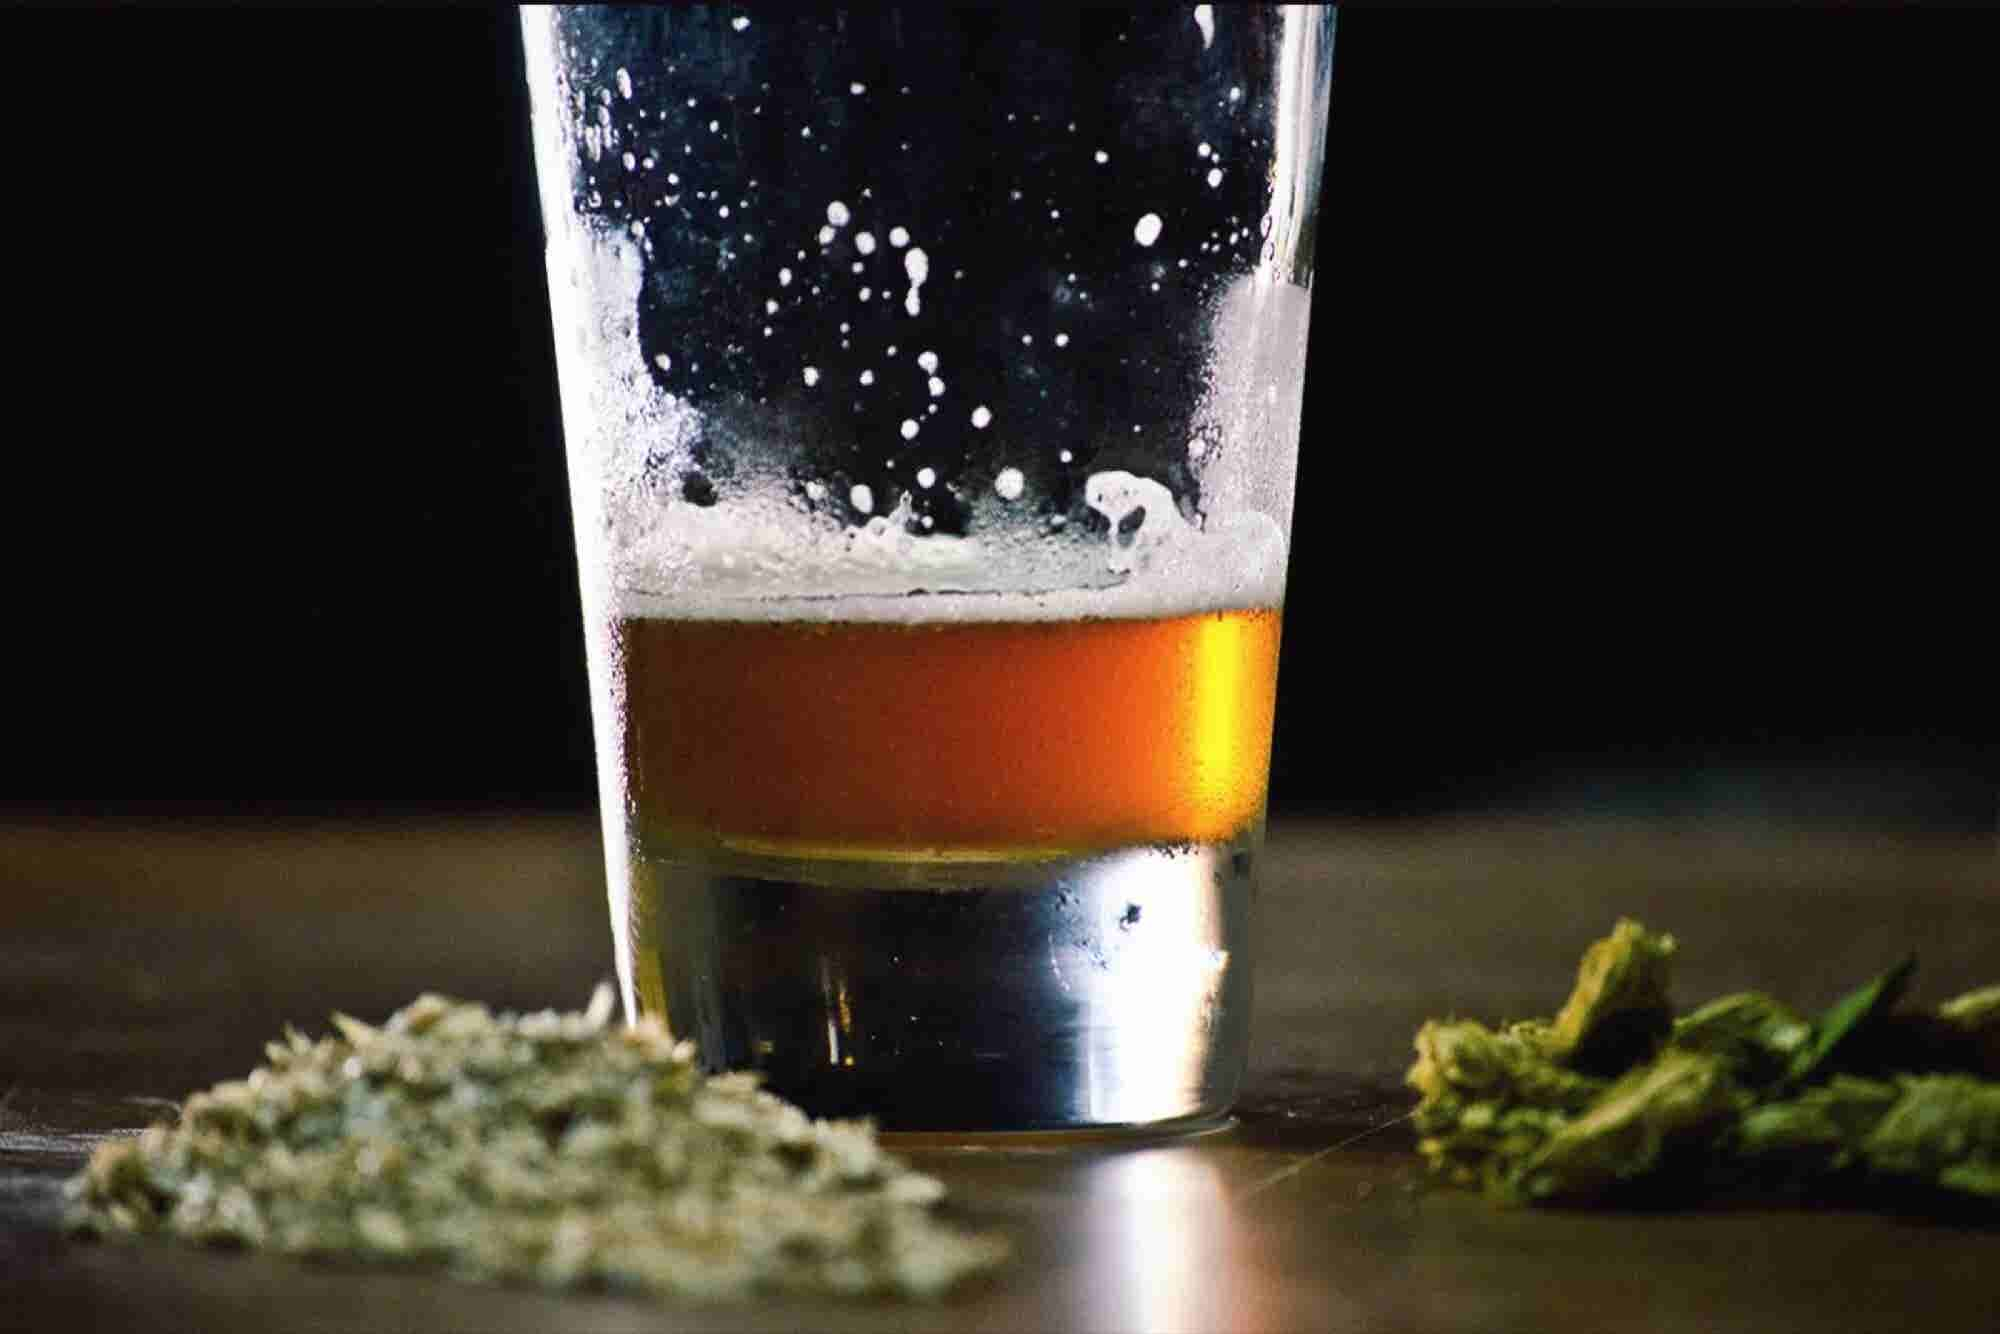 Researchers Believe Legal Marijuana Could Hurt Beer Sales